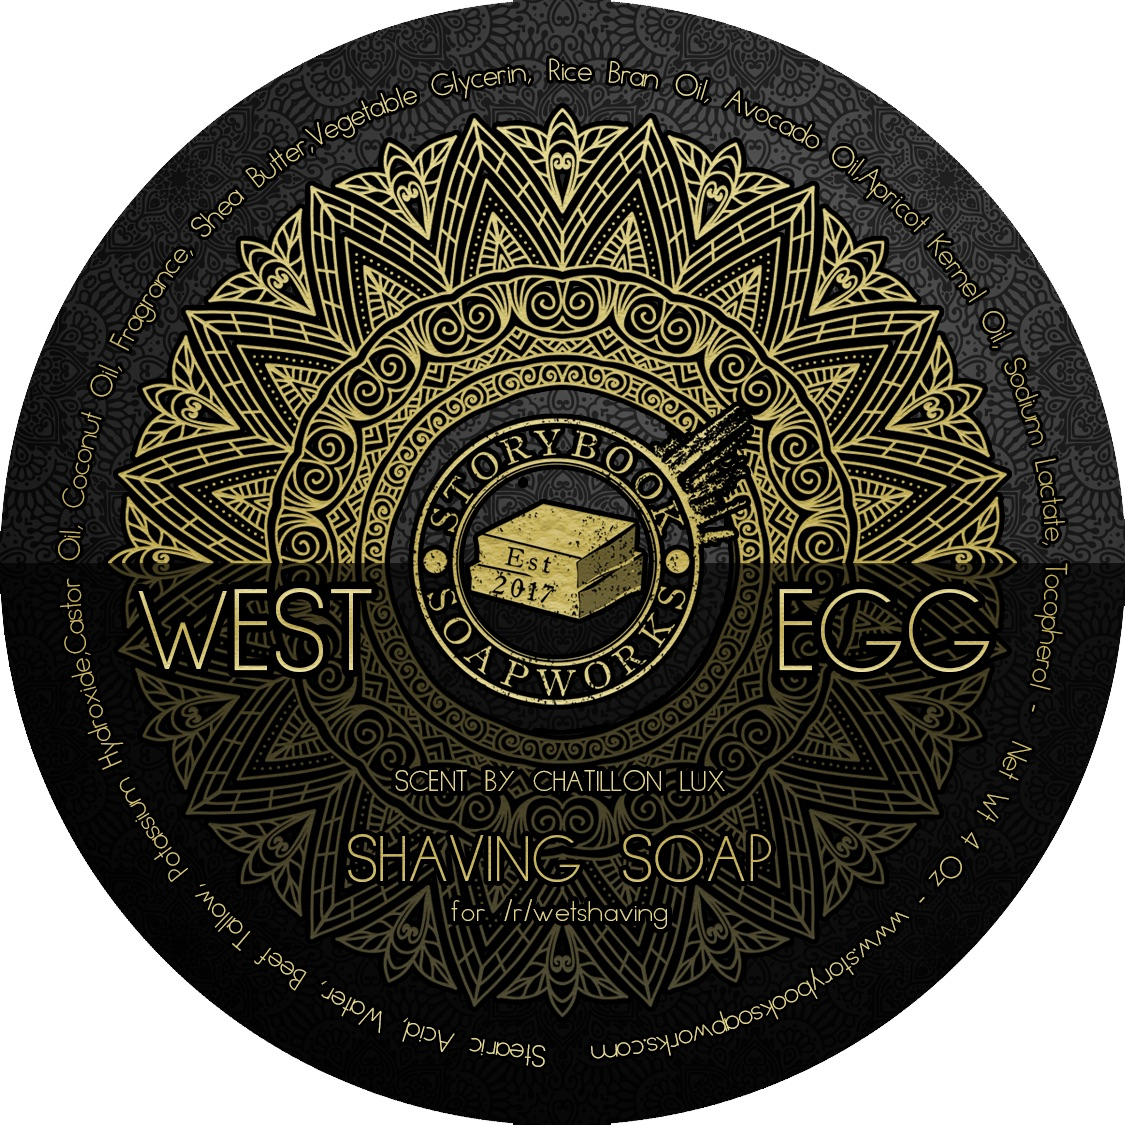 Chatillon Lux/Storybook Soapworks - West Egg - Soap image